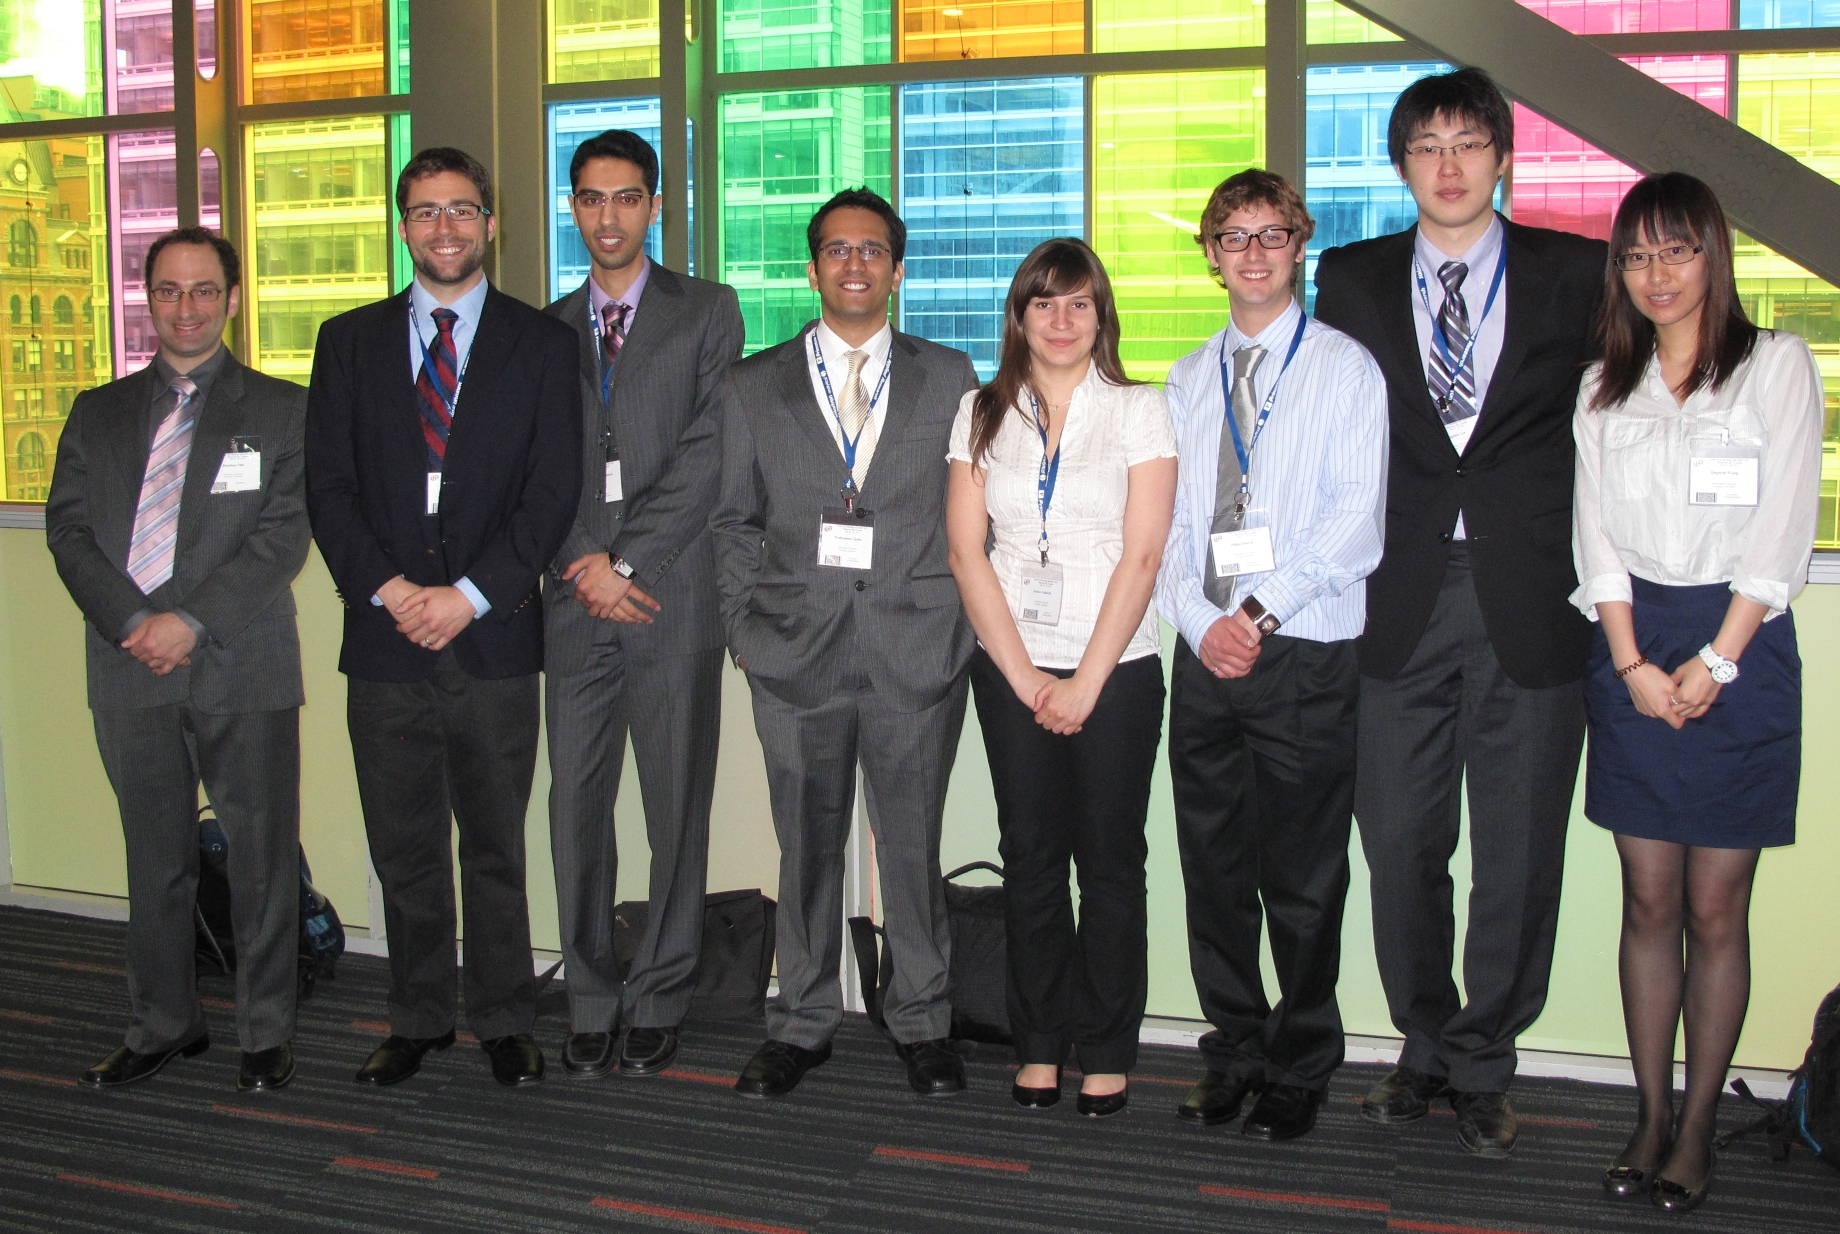 ECS in Montreal 2011: Jon Ellis, James Hinebaugh, Ali Ebrahimi, Pradyumna Challa, Jessica Yablecki, Dillon Fuerth, Jongmin Lee, and Jingwen Wang.